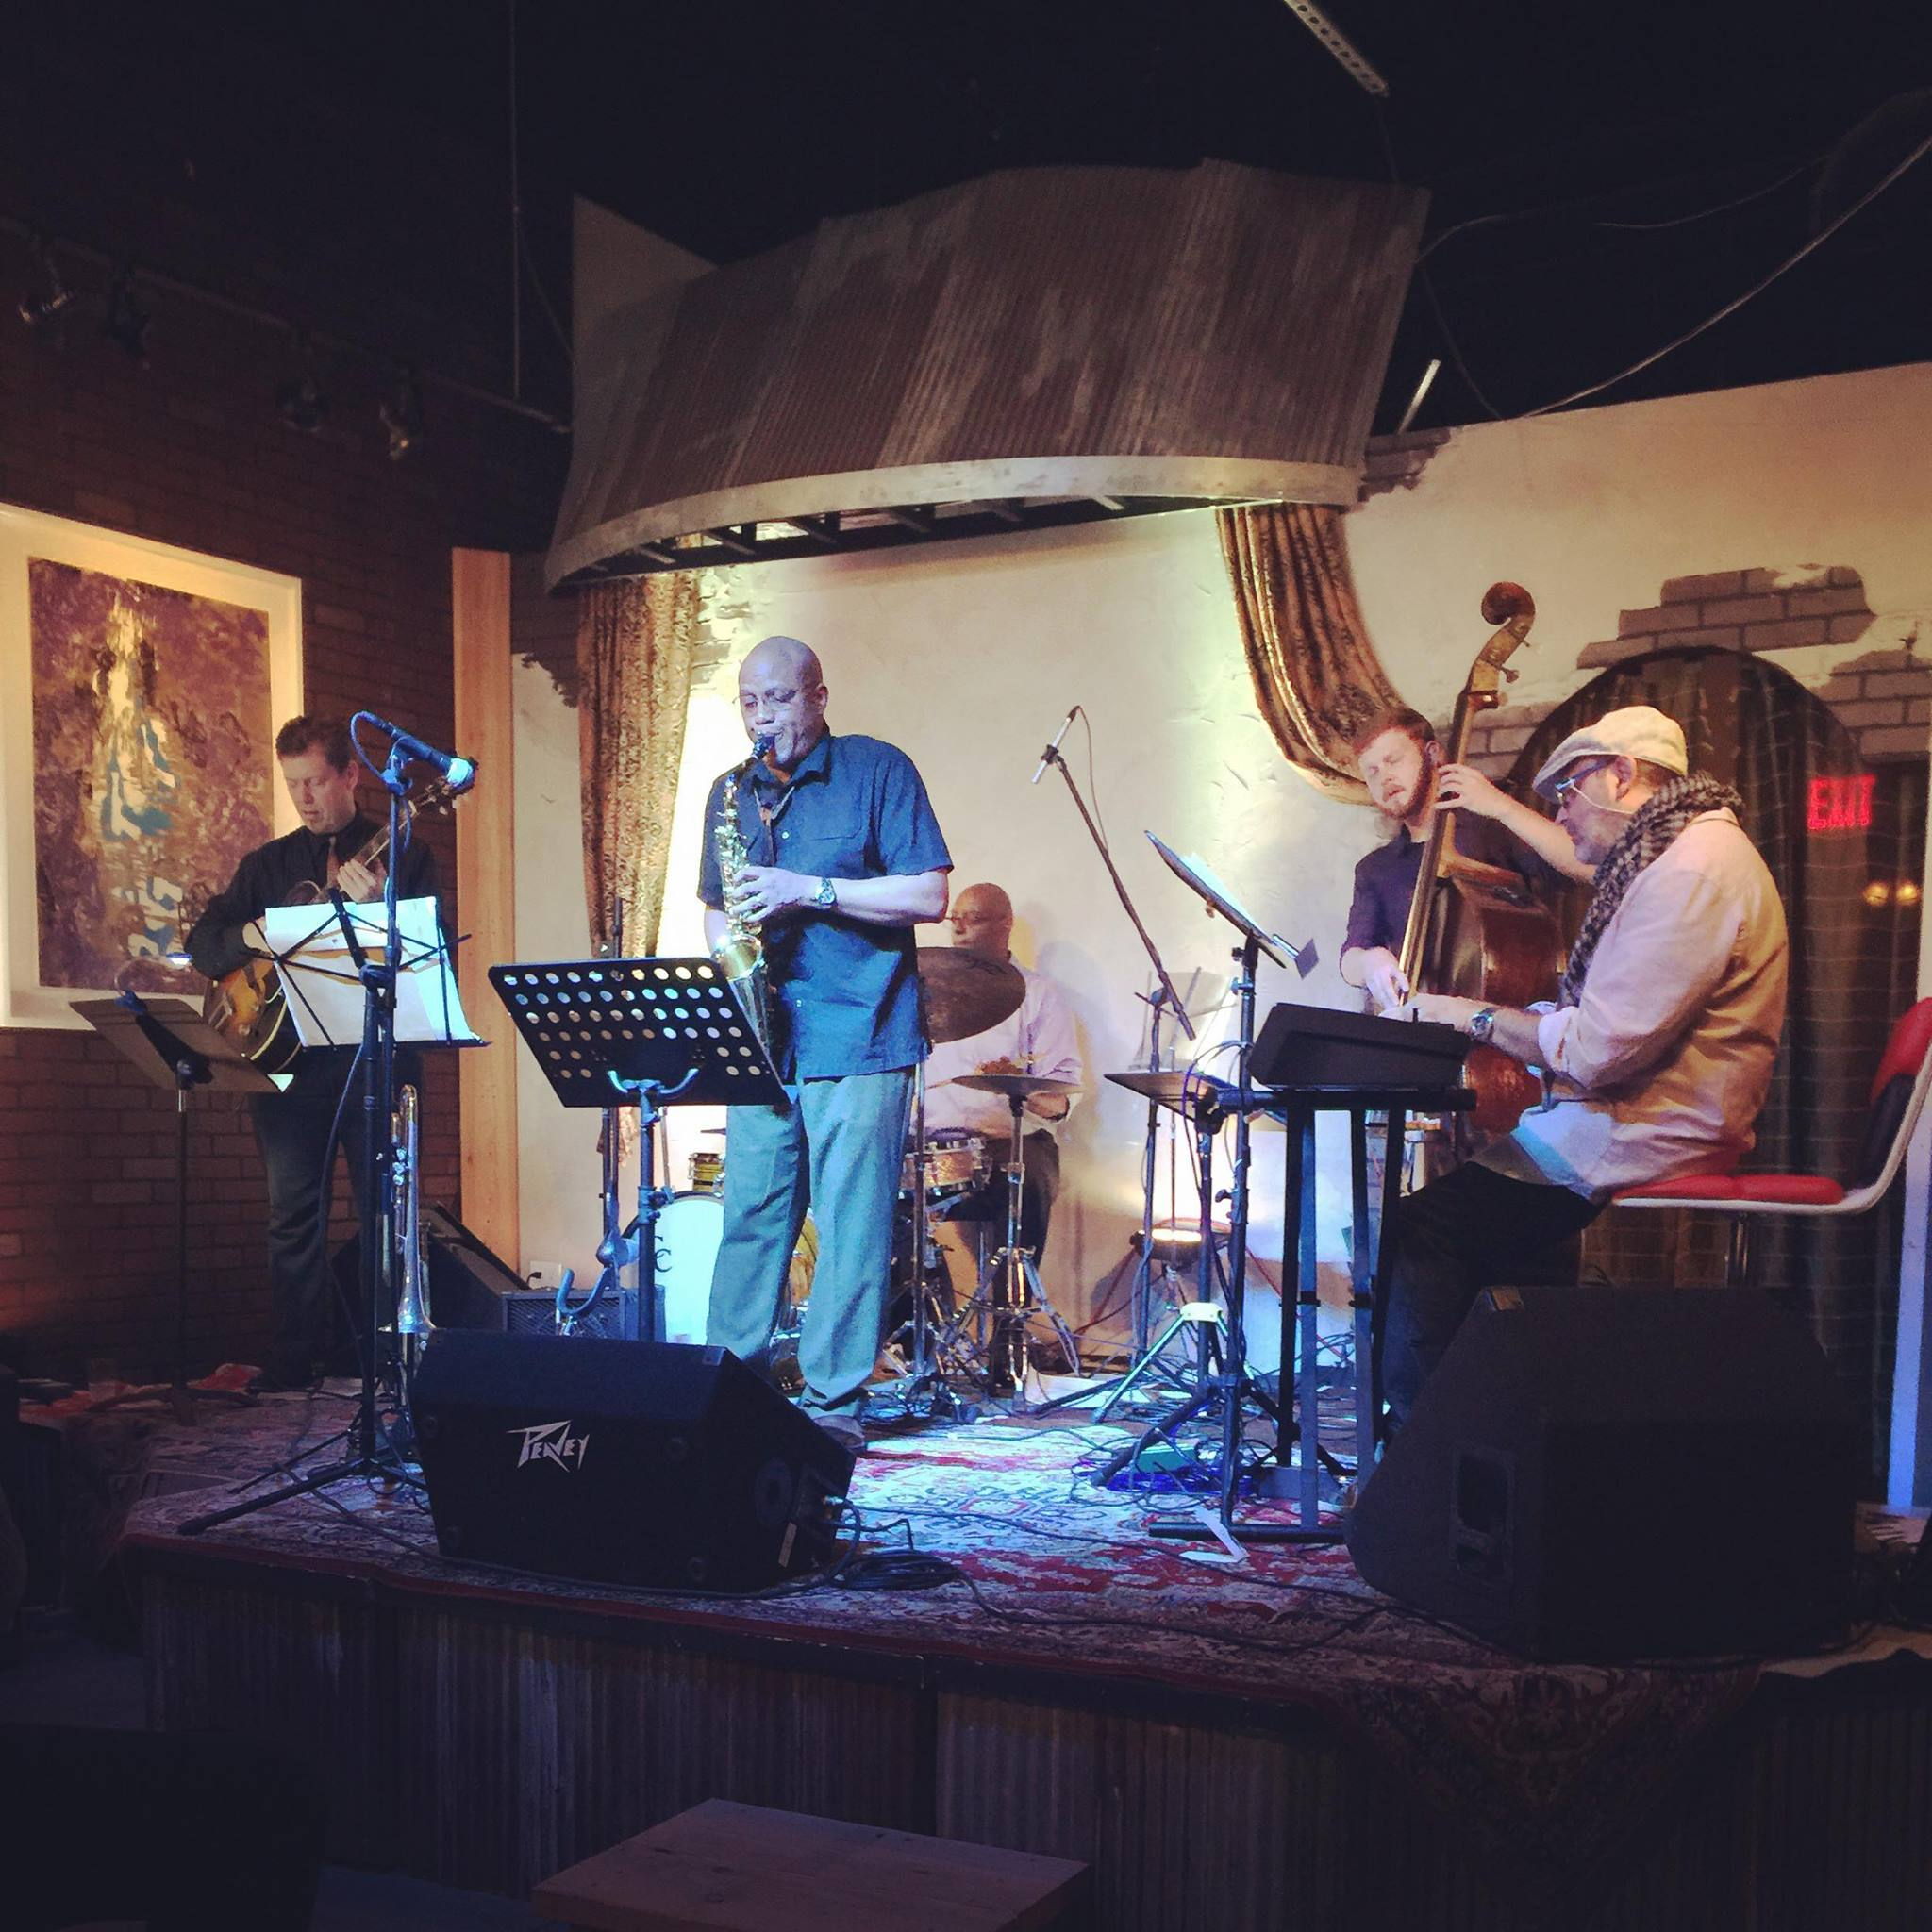 Dino Massa Kansas City Quintet performing at The Art Factor in Kansas City (2016)